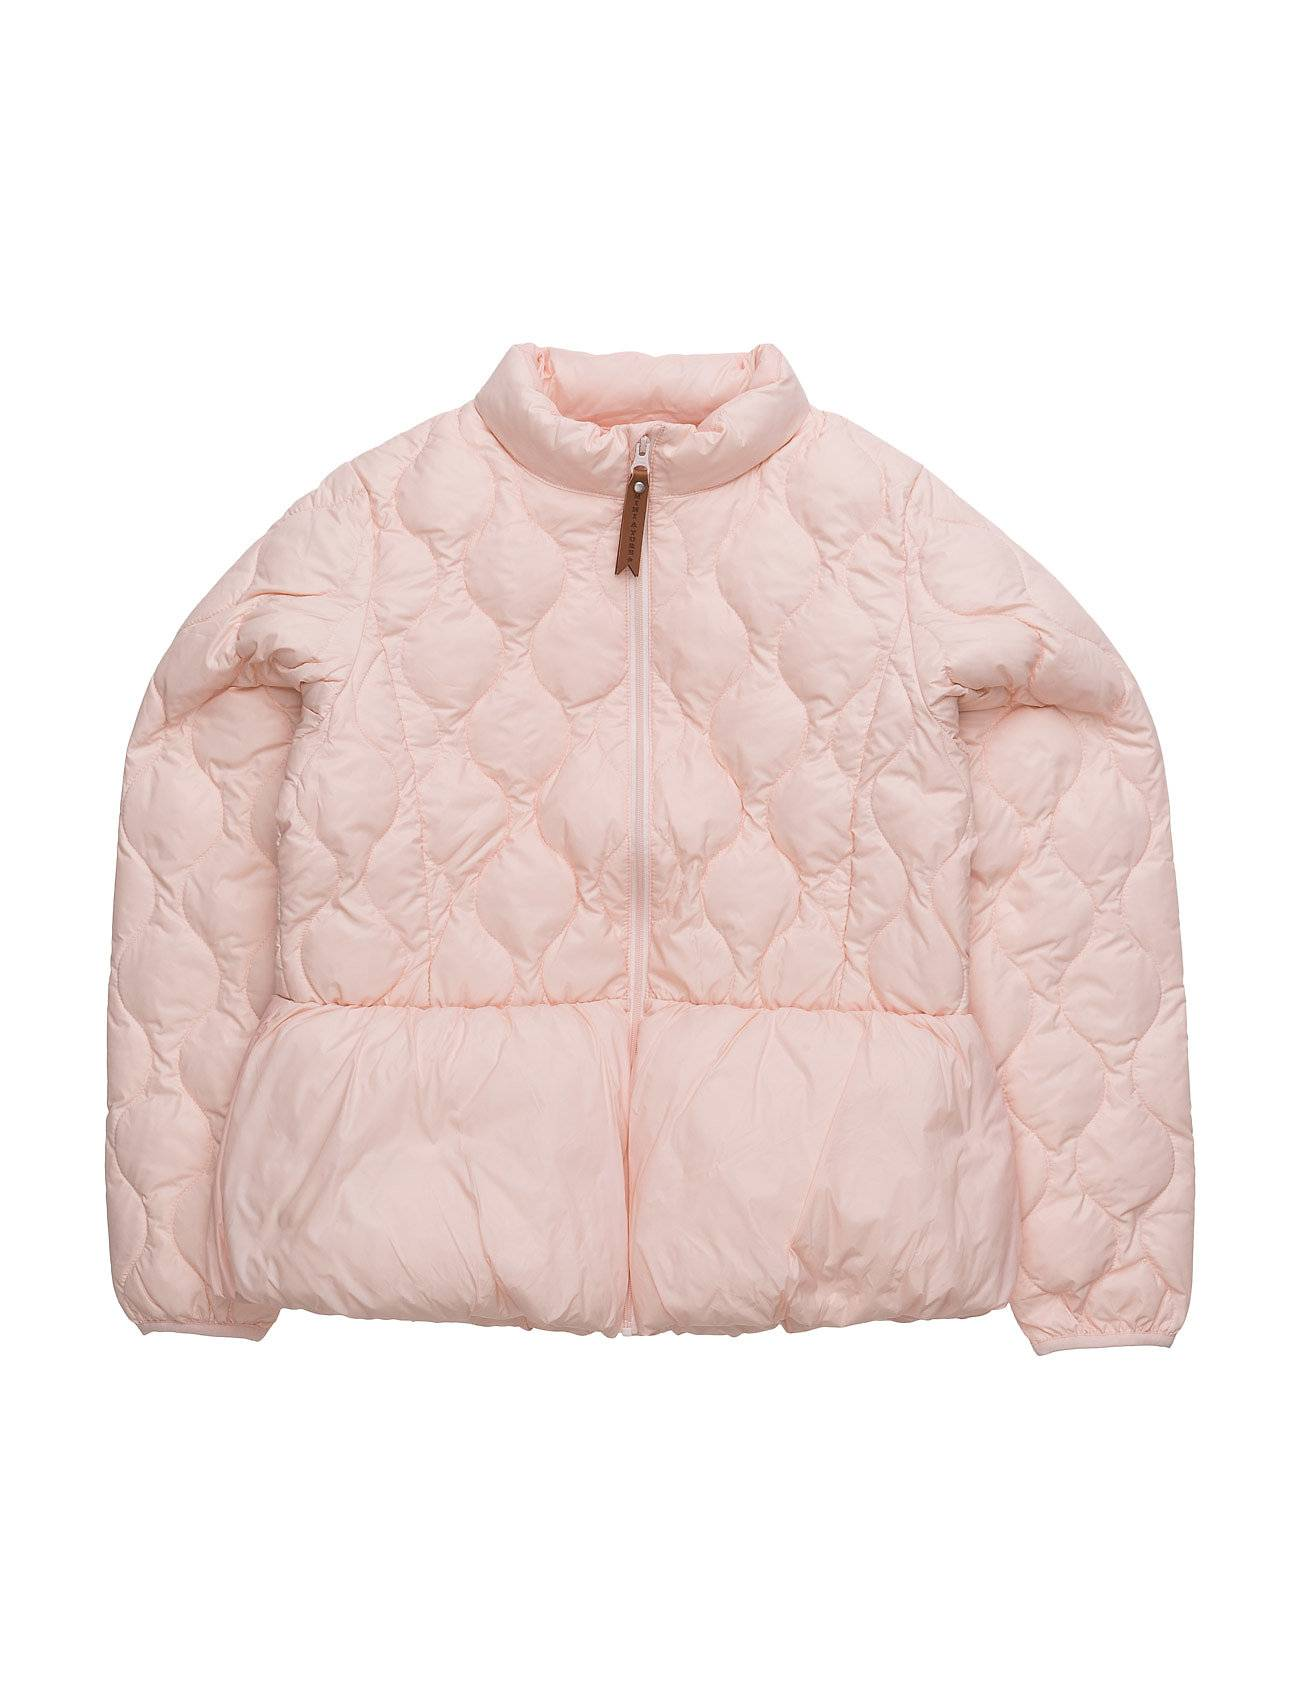 Mini A Ture Hariet, K Jacket